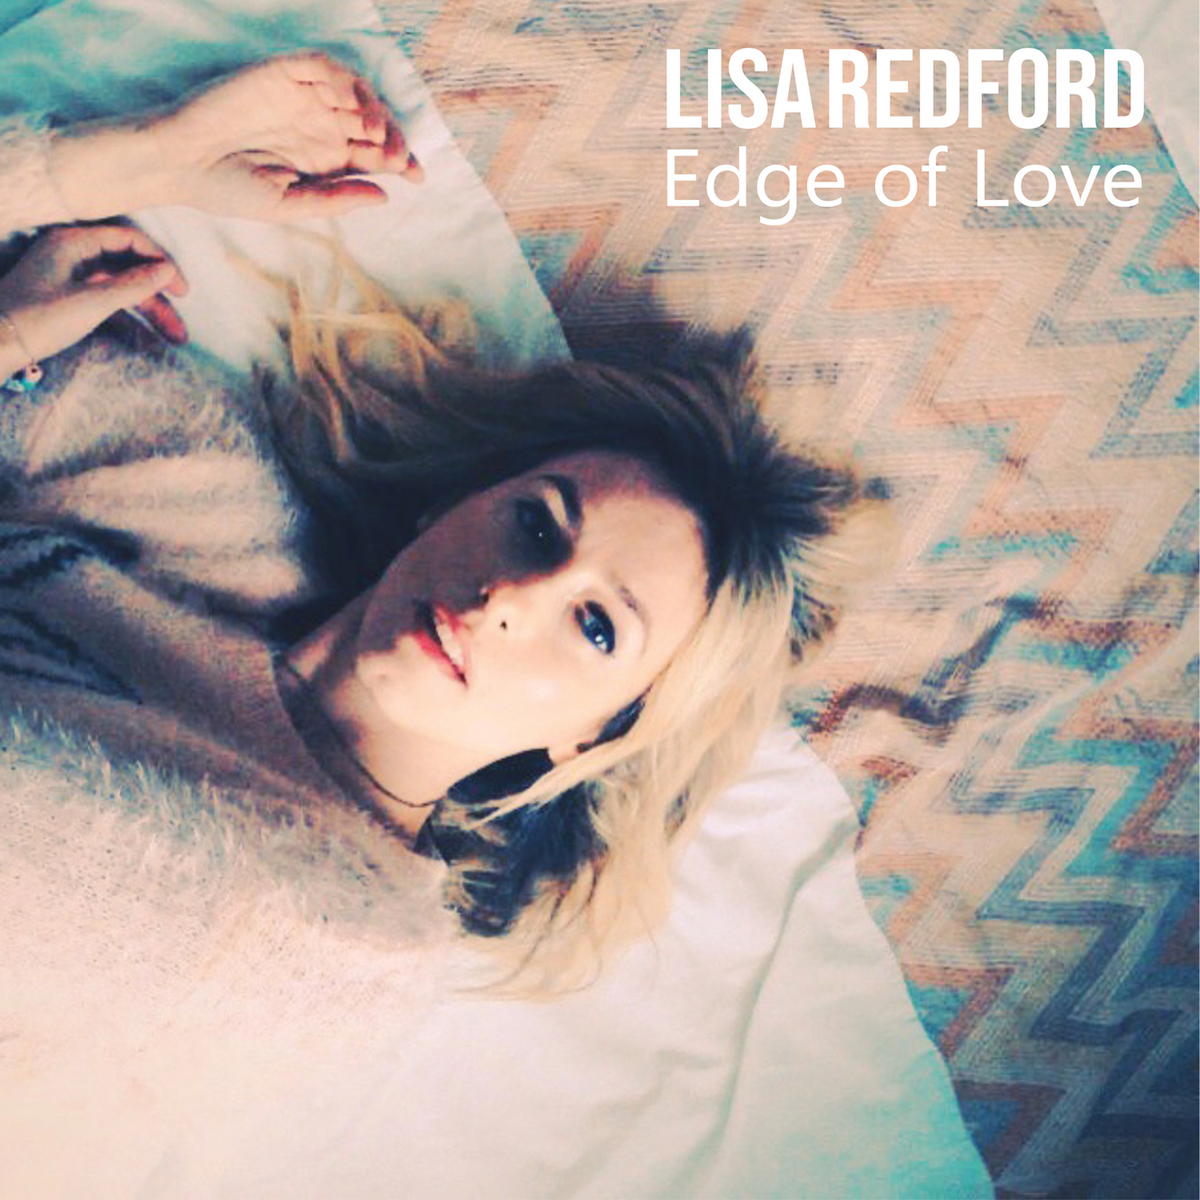 LISA_REDFORD_EDGE_OF_LOVE_3000PX.jpg